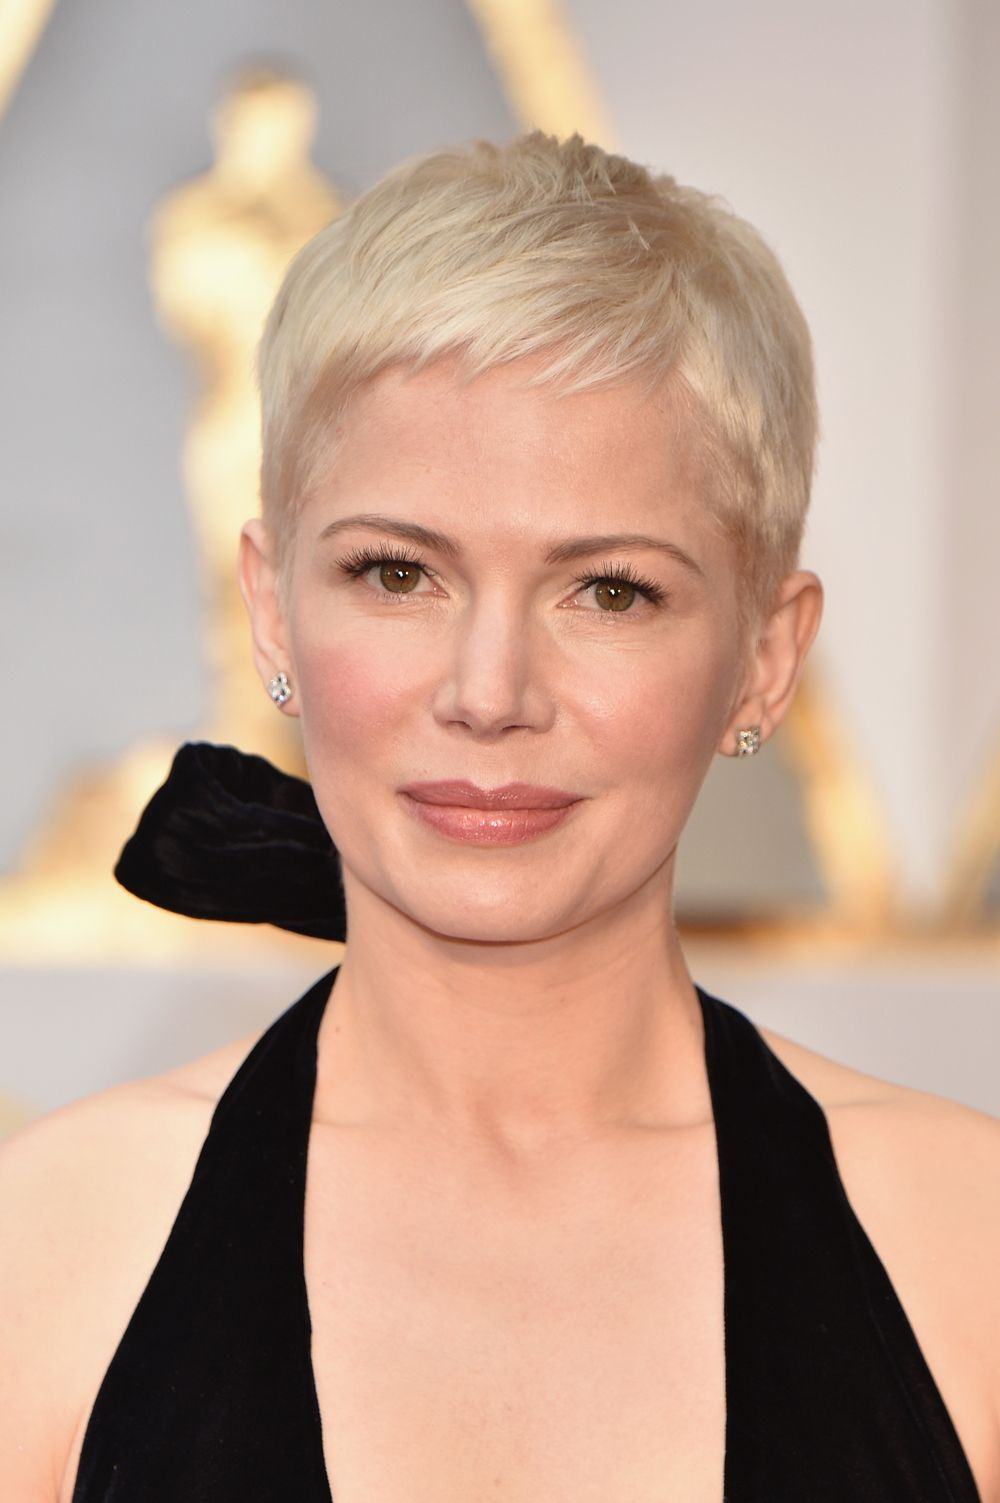 Pixie Cuts For 2019 34 Celebrity Hairstyle Ideas For Women